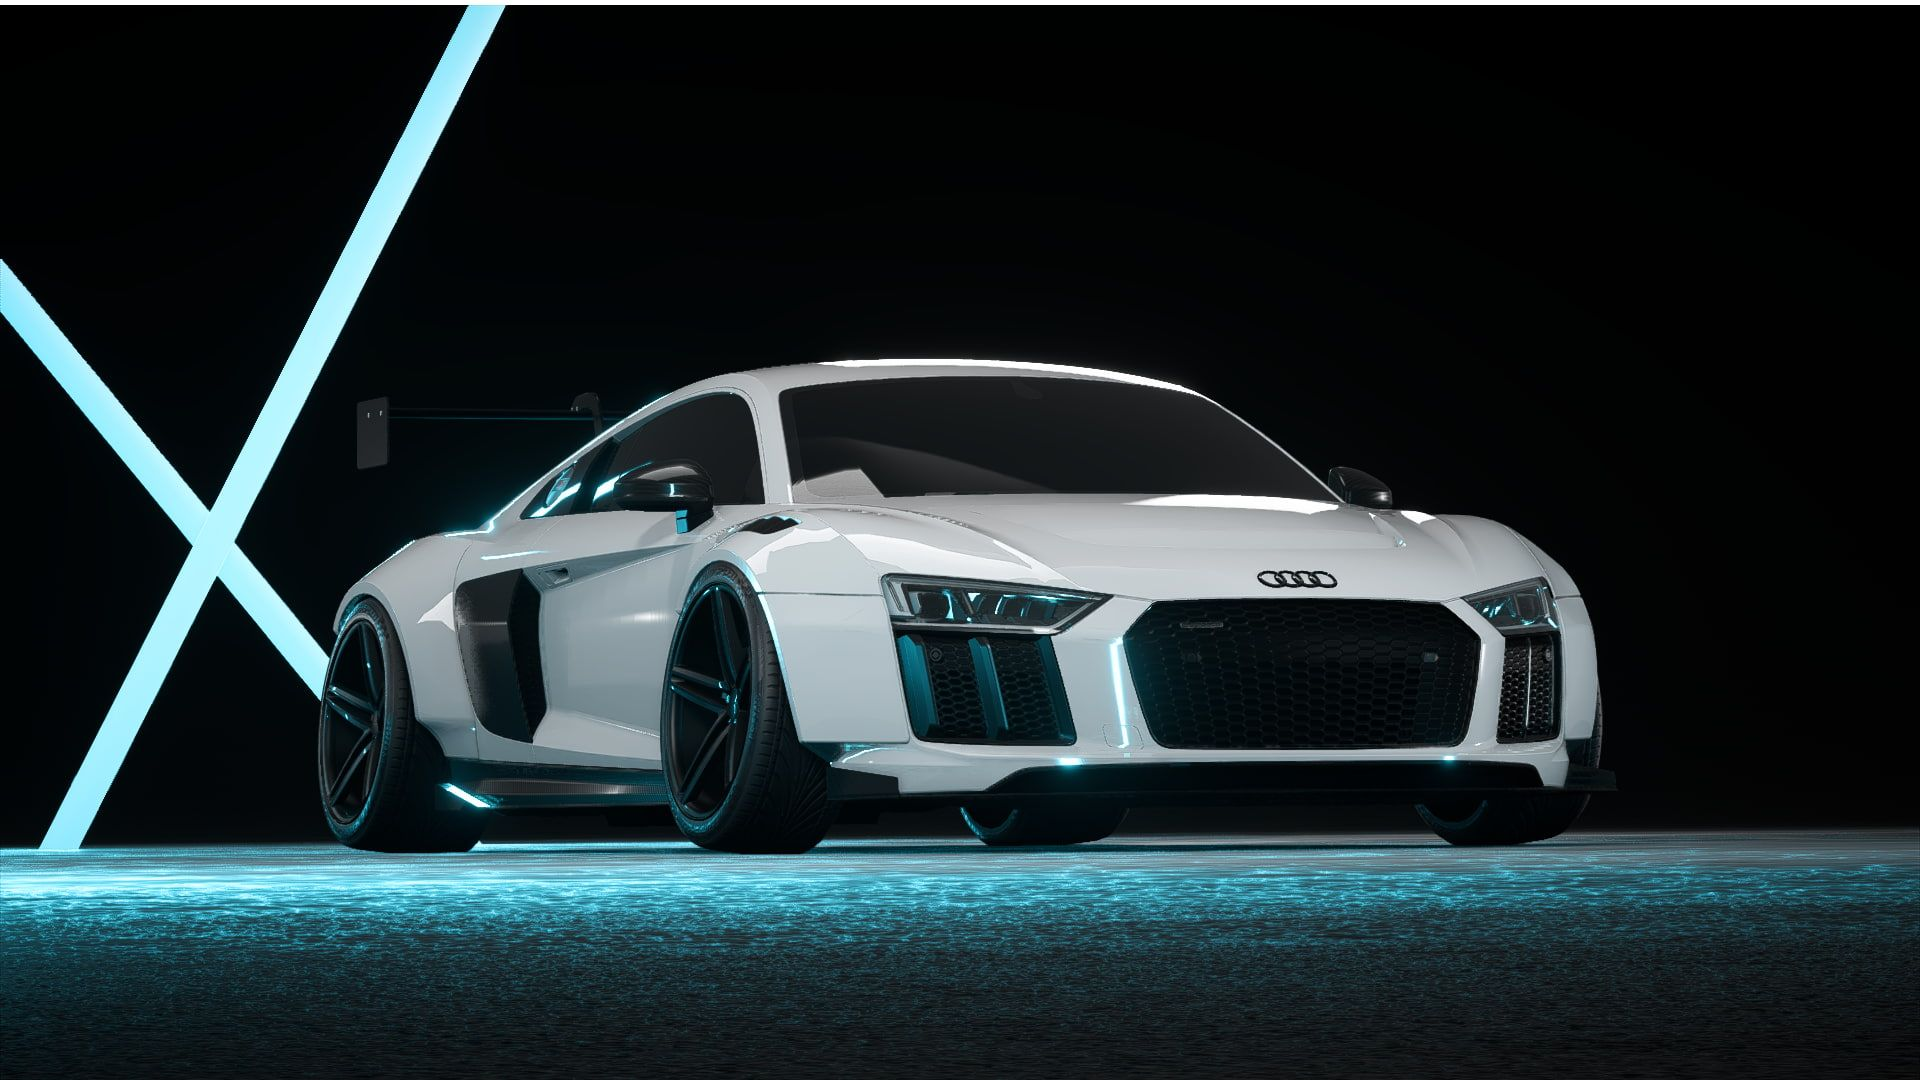 Audi R8 Car Need For Speed Need For Speed Payback White Blue Vehicle 1080p Wallpaper Hdwallpaper Desktop Audi R8 Car Car Wallpapers Audi Audi r8 car wallpaper hd 1080p free